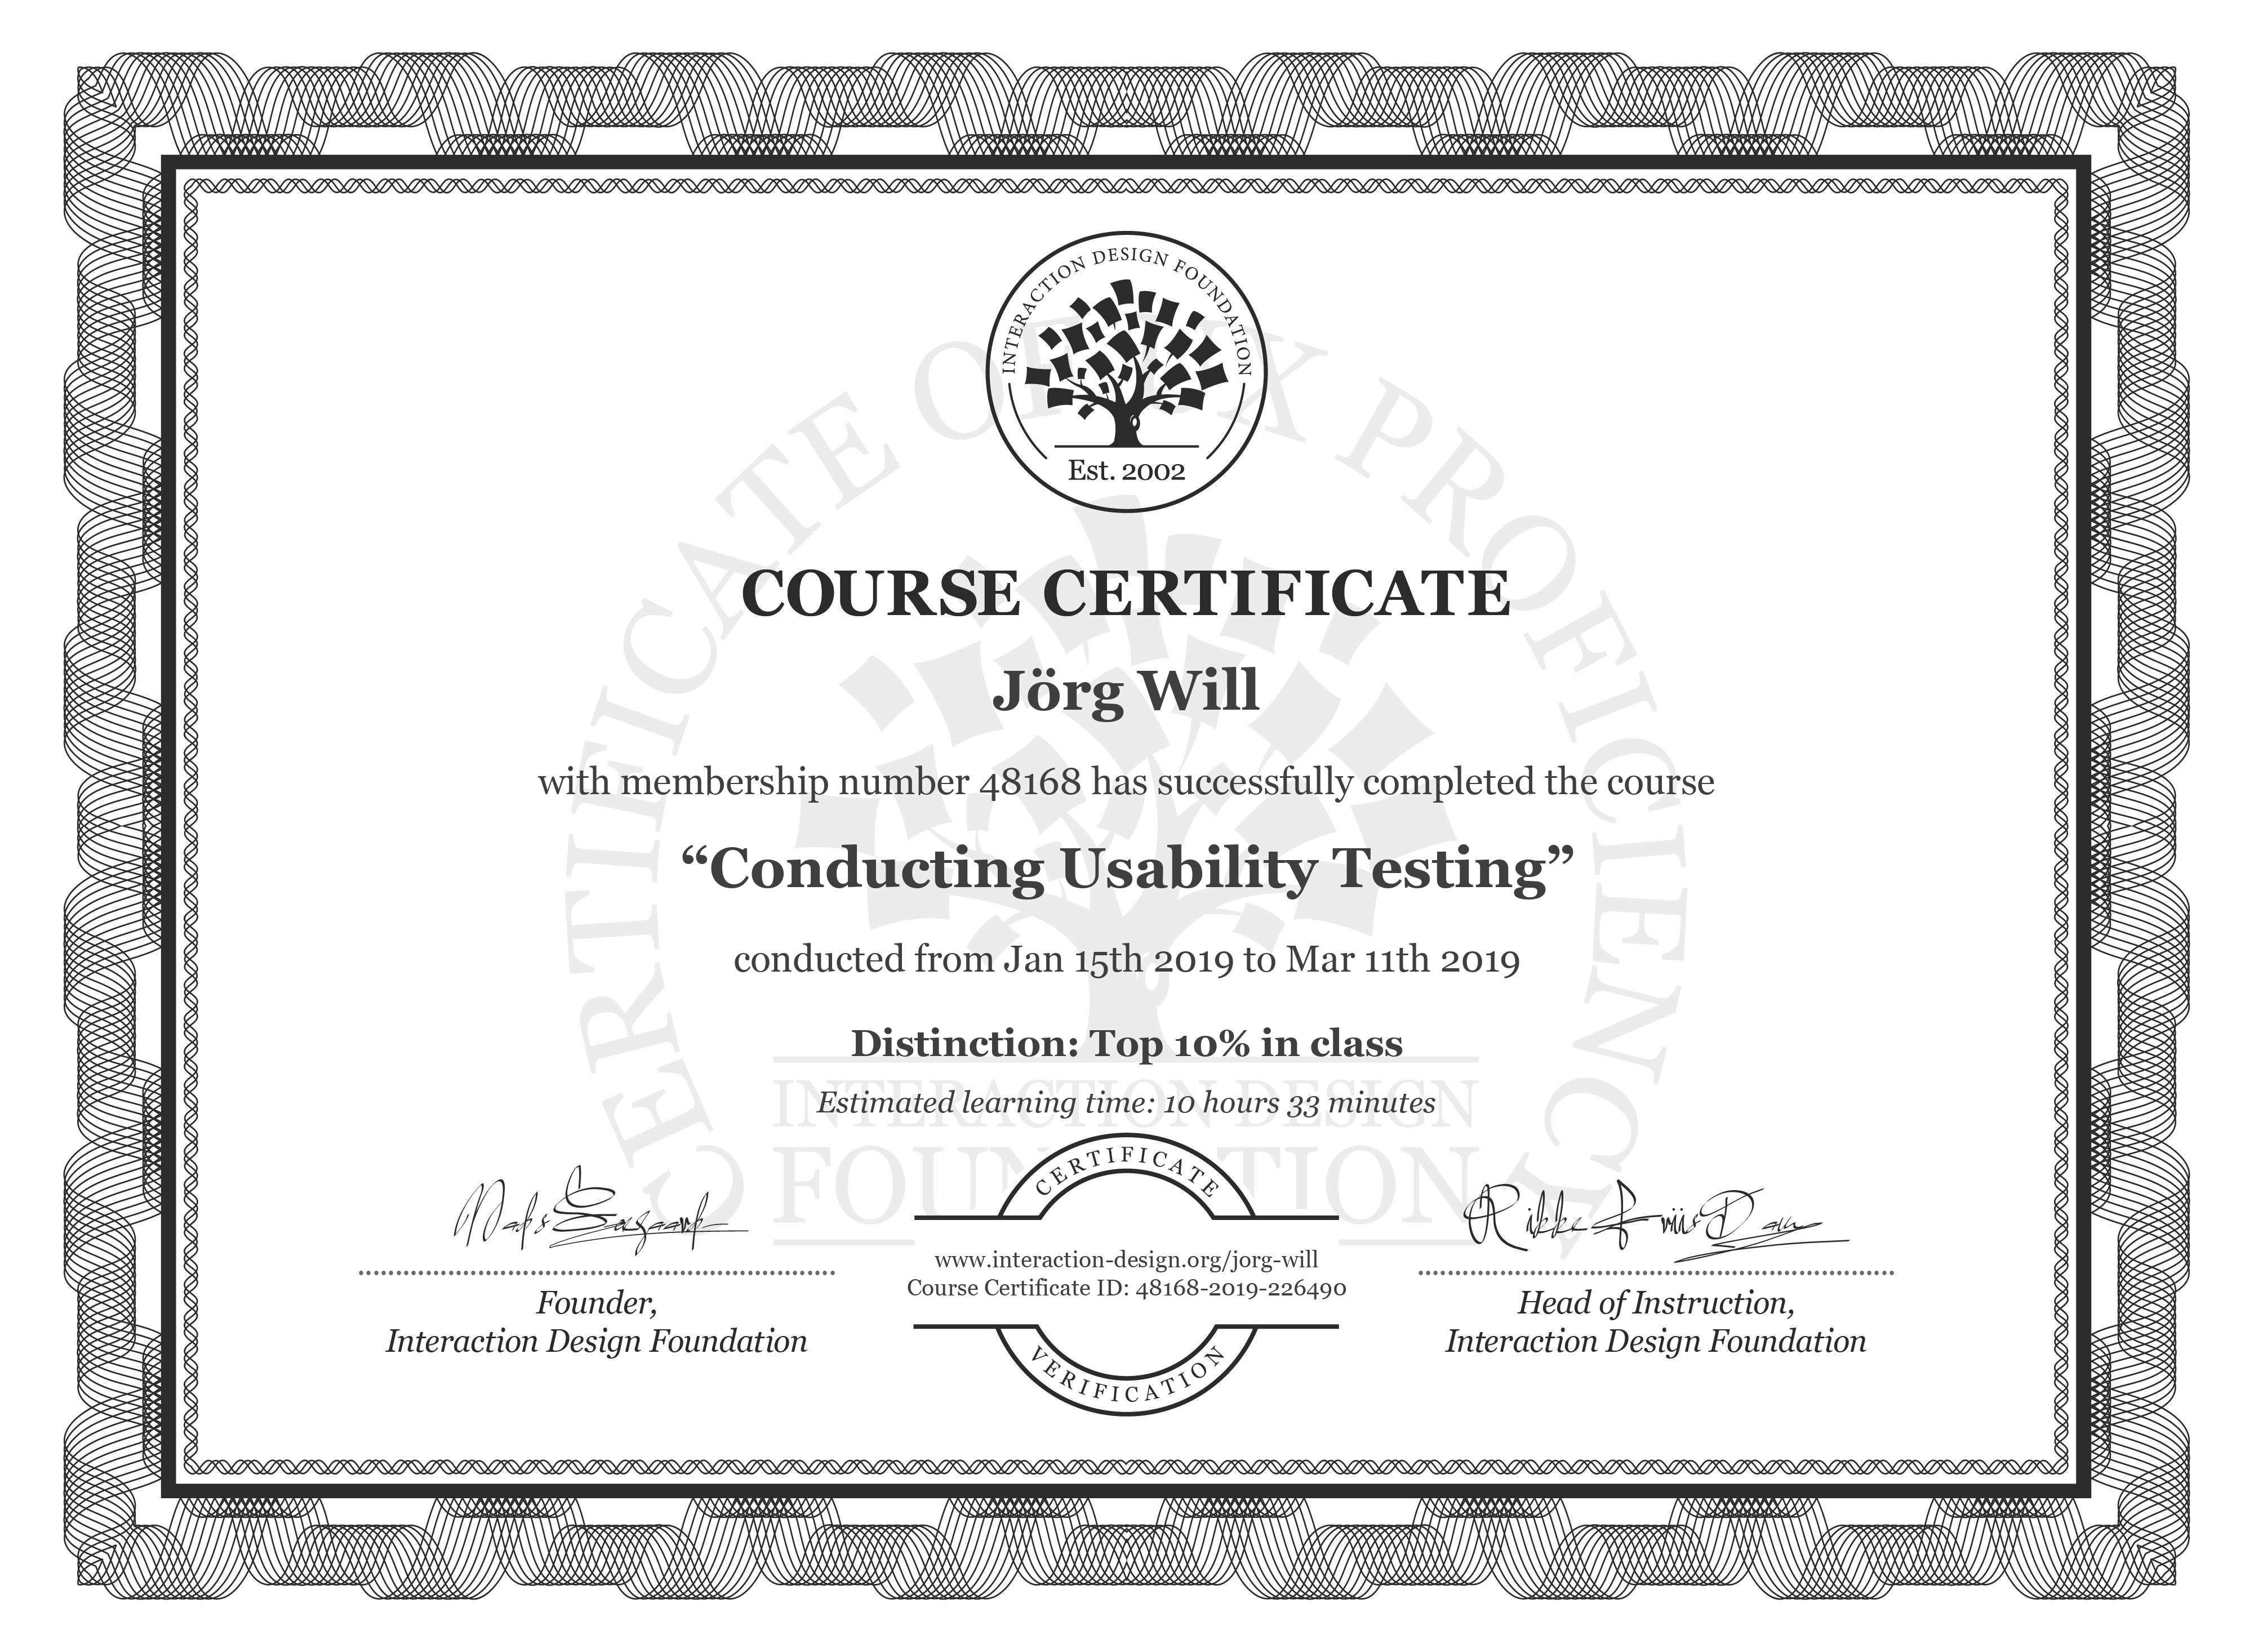 Jörg Will: Course Certificate - Conducting Usability Testing